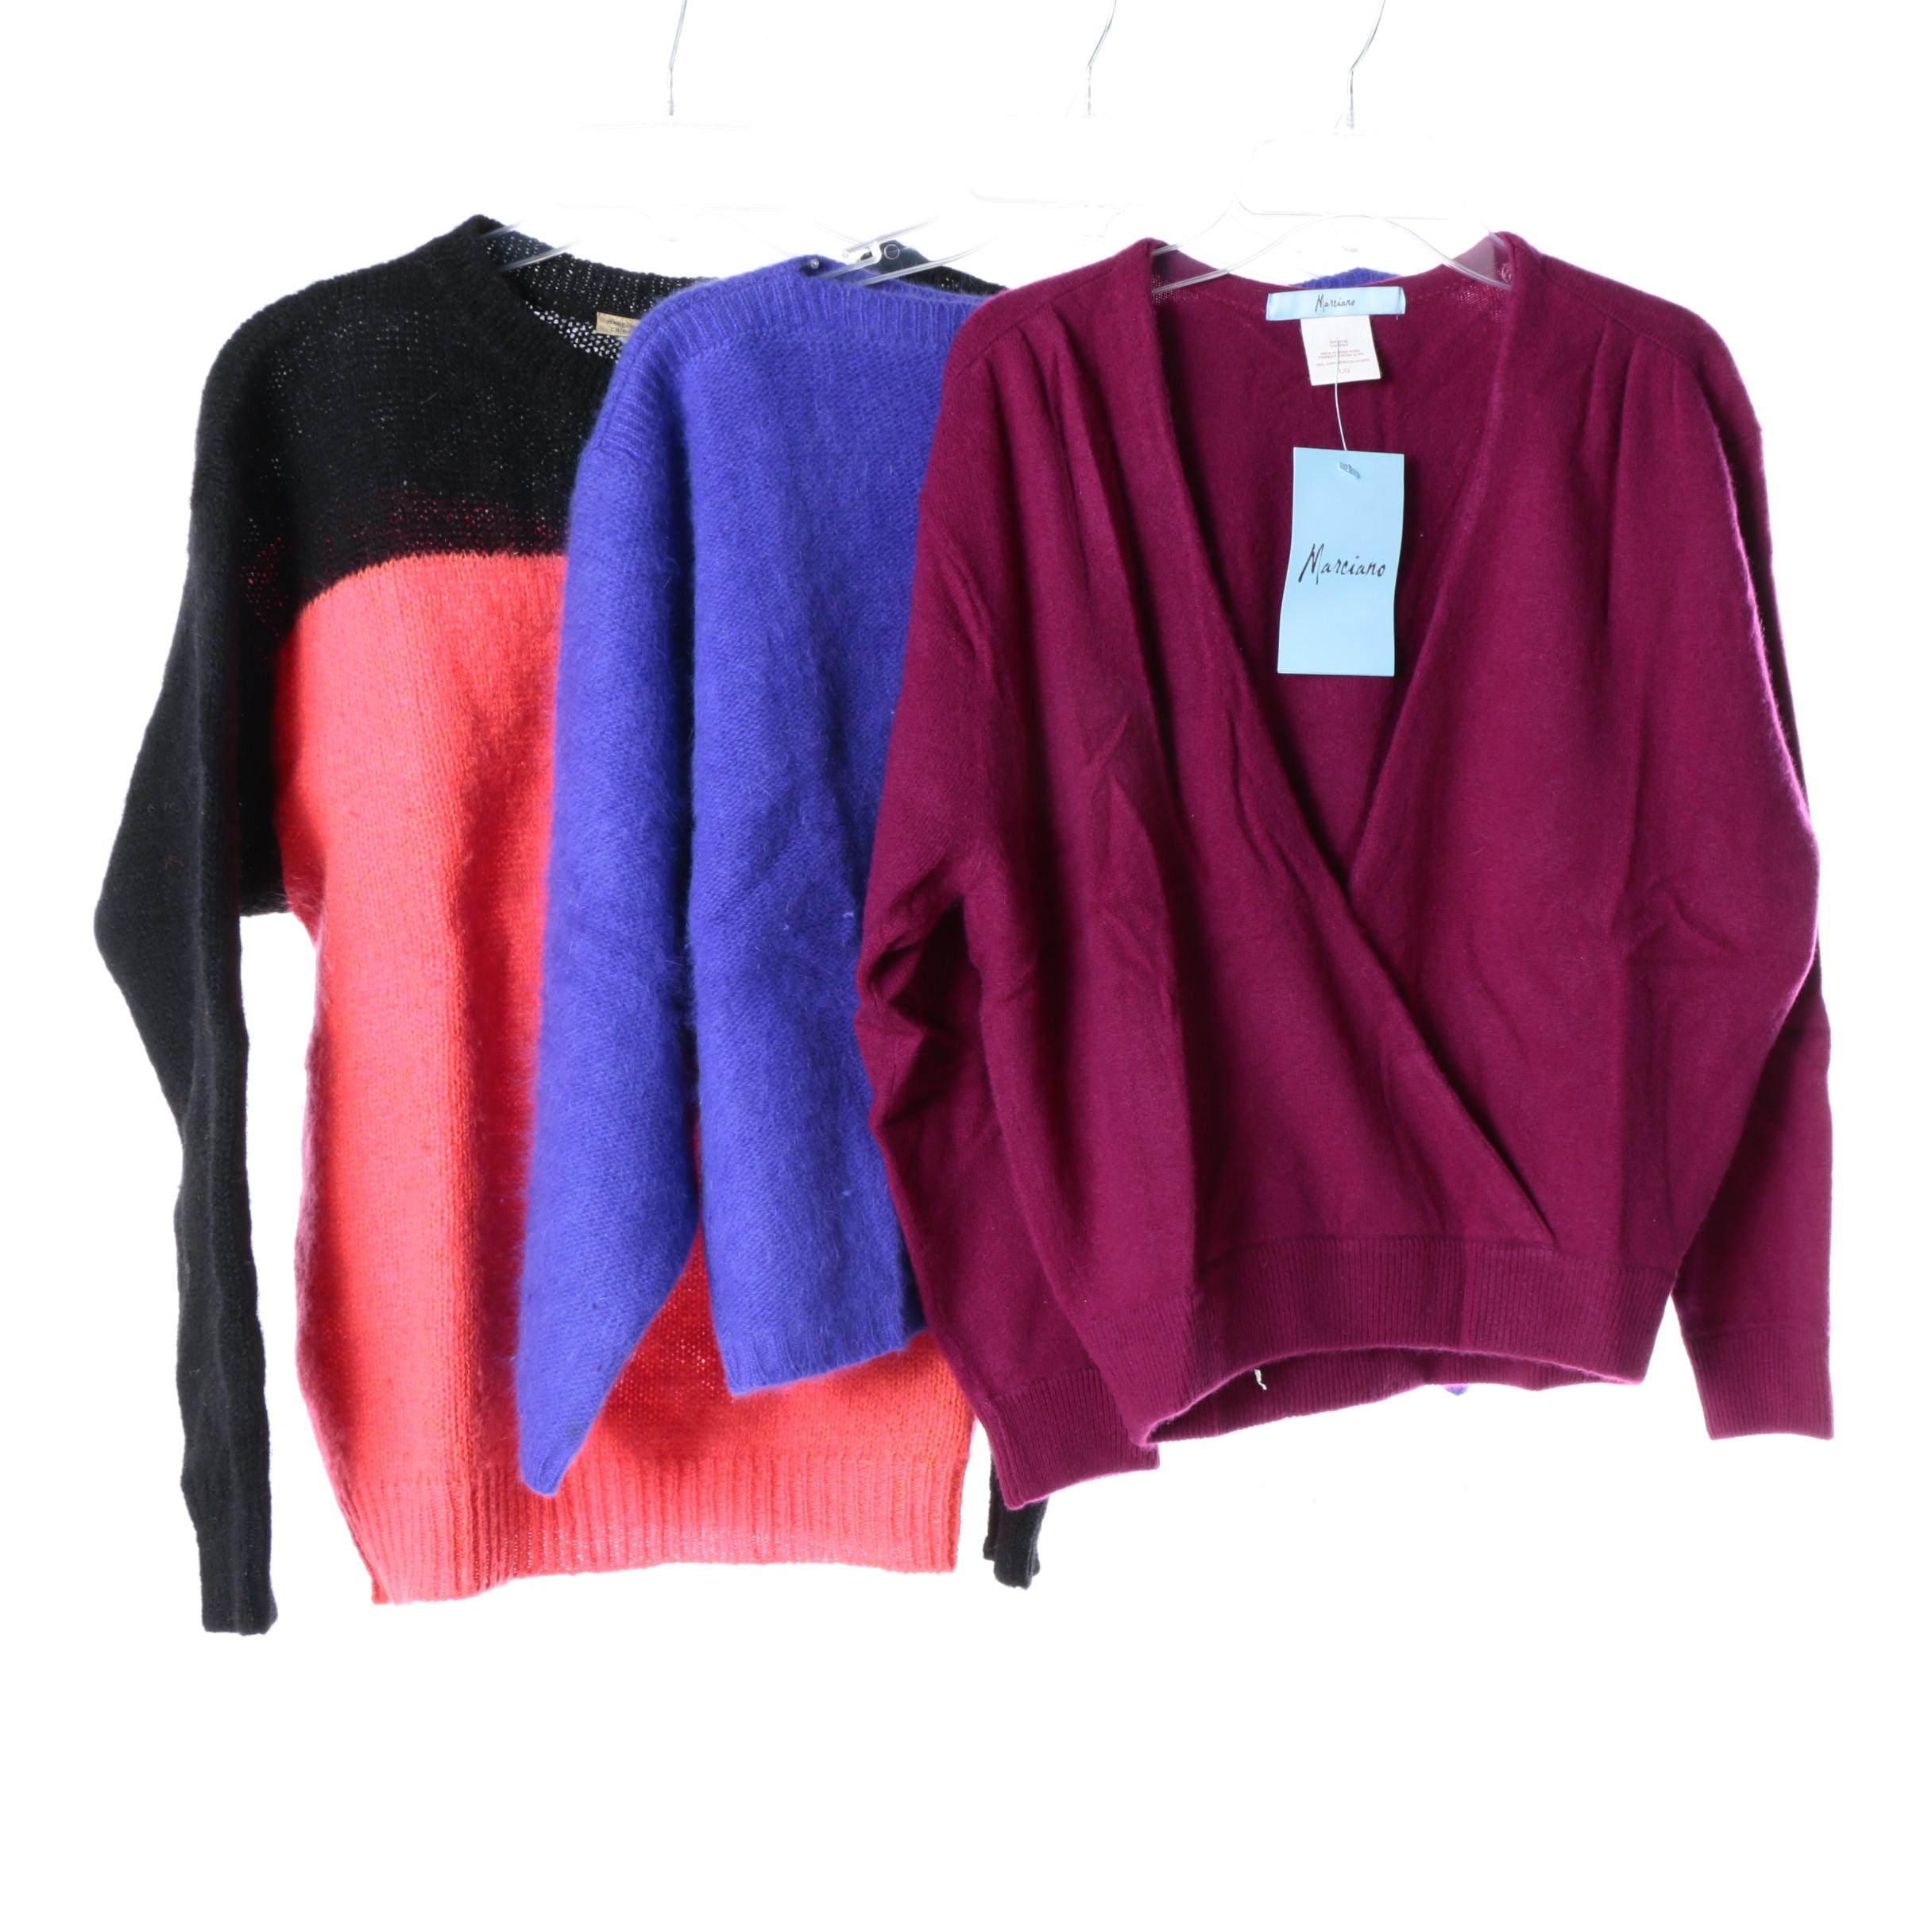 Women's Sweaters Including Marciano